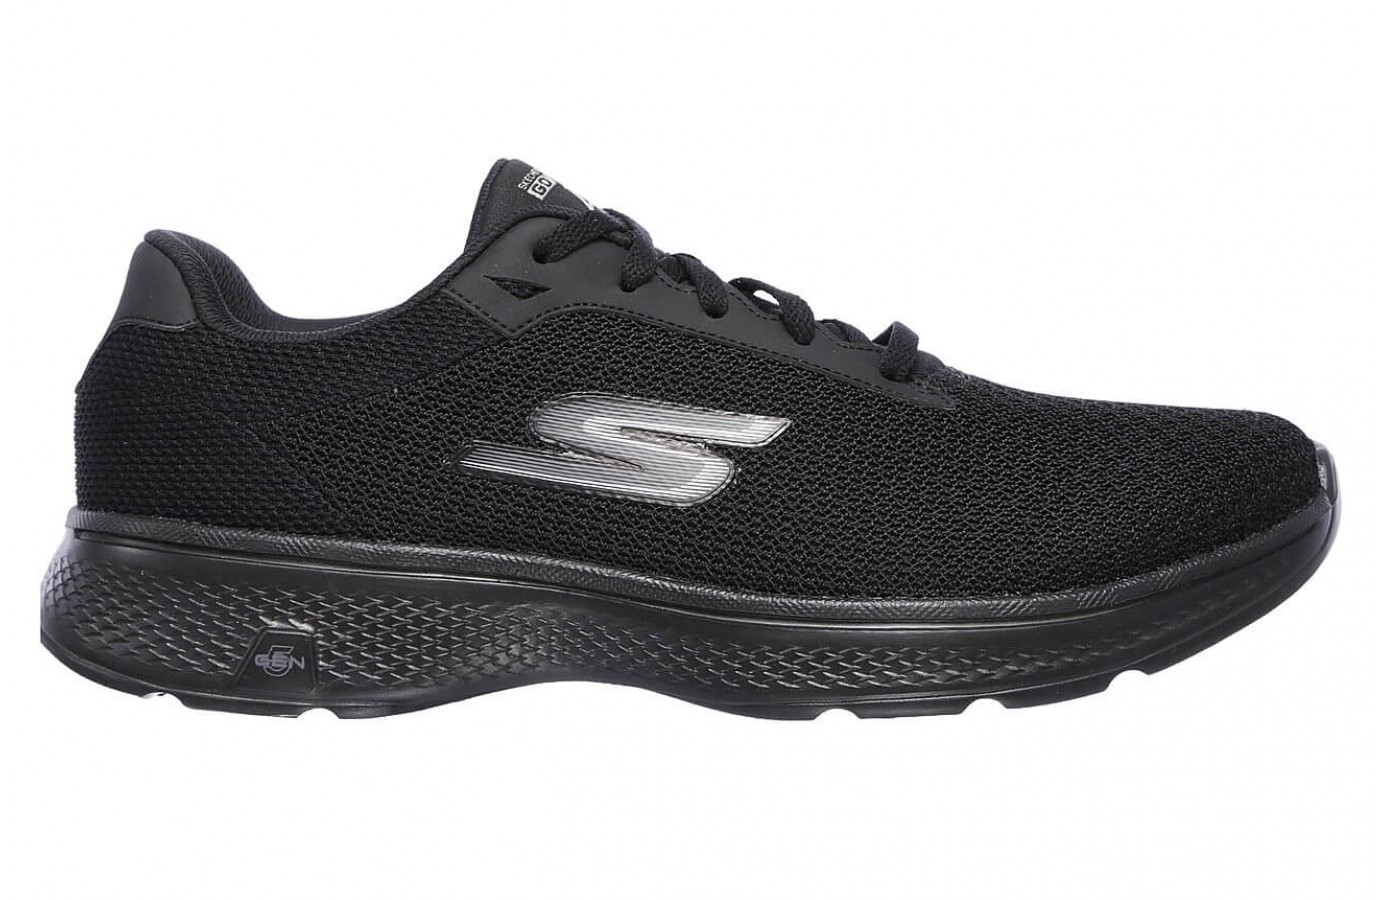 7947fa42558d Skechers GOwalk 4 Reviewed - To Buy or Not in Apr 2019